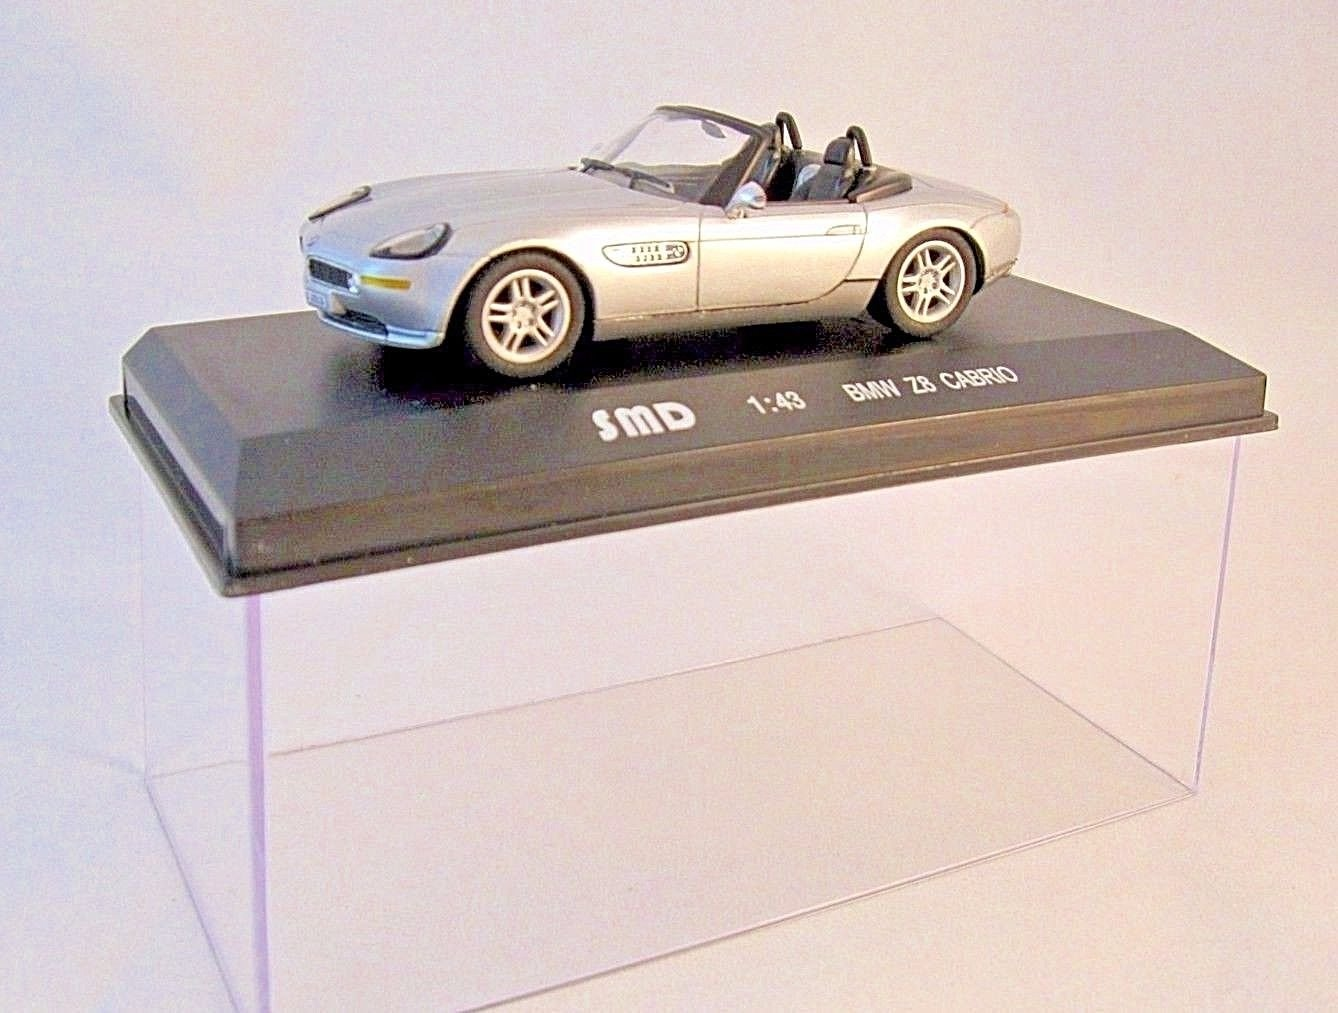 BMW Z8 SPIDER CABRIO 1999 HIGH SPEED/SAN MODEL DESIGN DIECAST MODEL CAR1/43 NEW